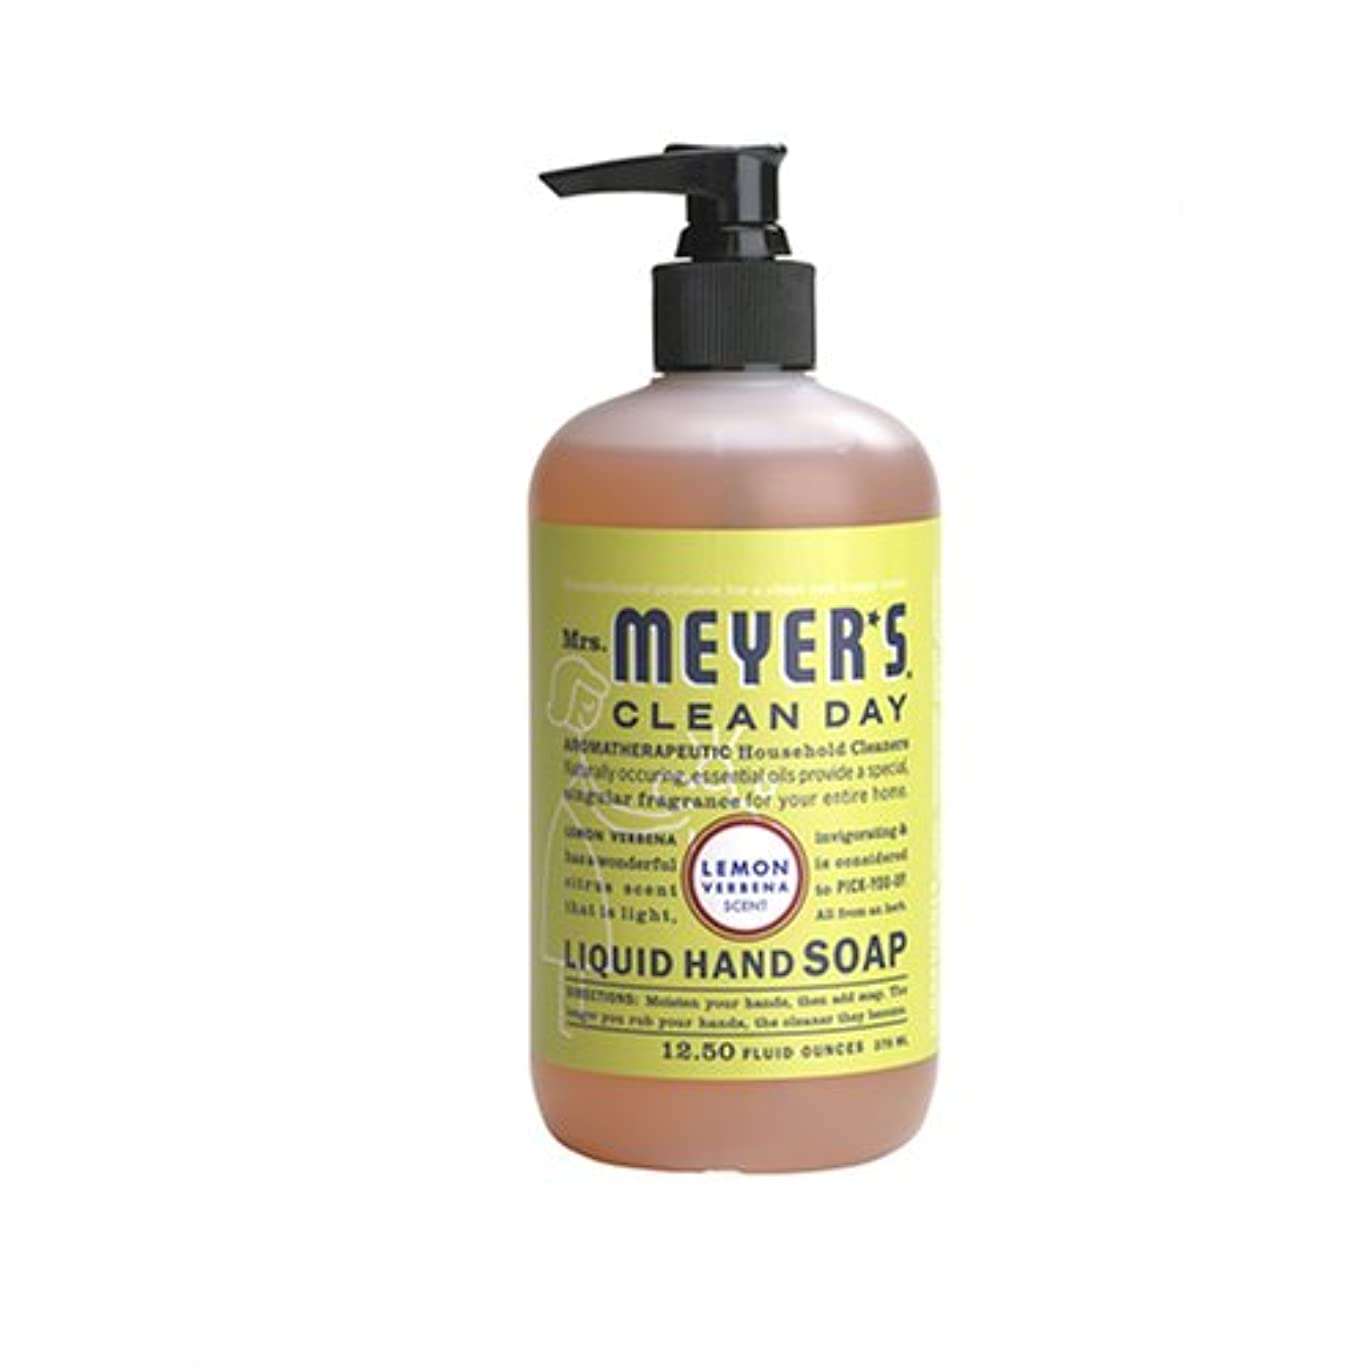 メイン感動する推進、動かすMrs. Meyers Clean Day, Liquid Hand Soap, Lemon Verbena Scent, 12.5 fl oz (370 ml)